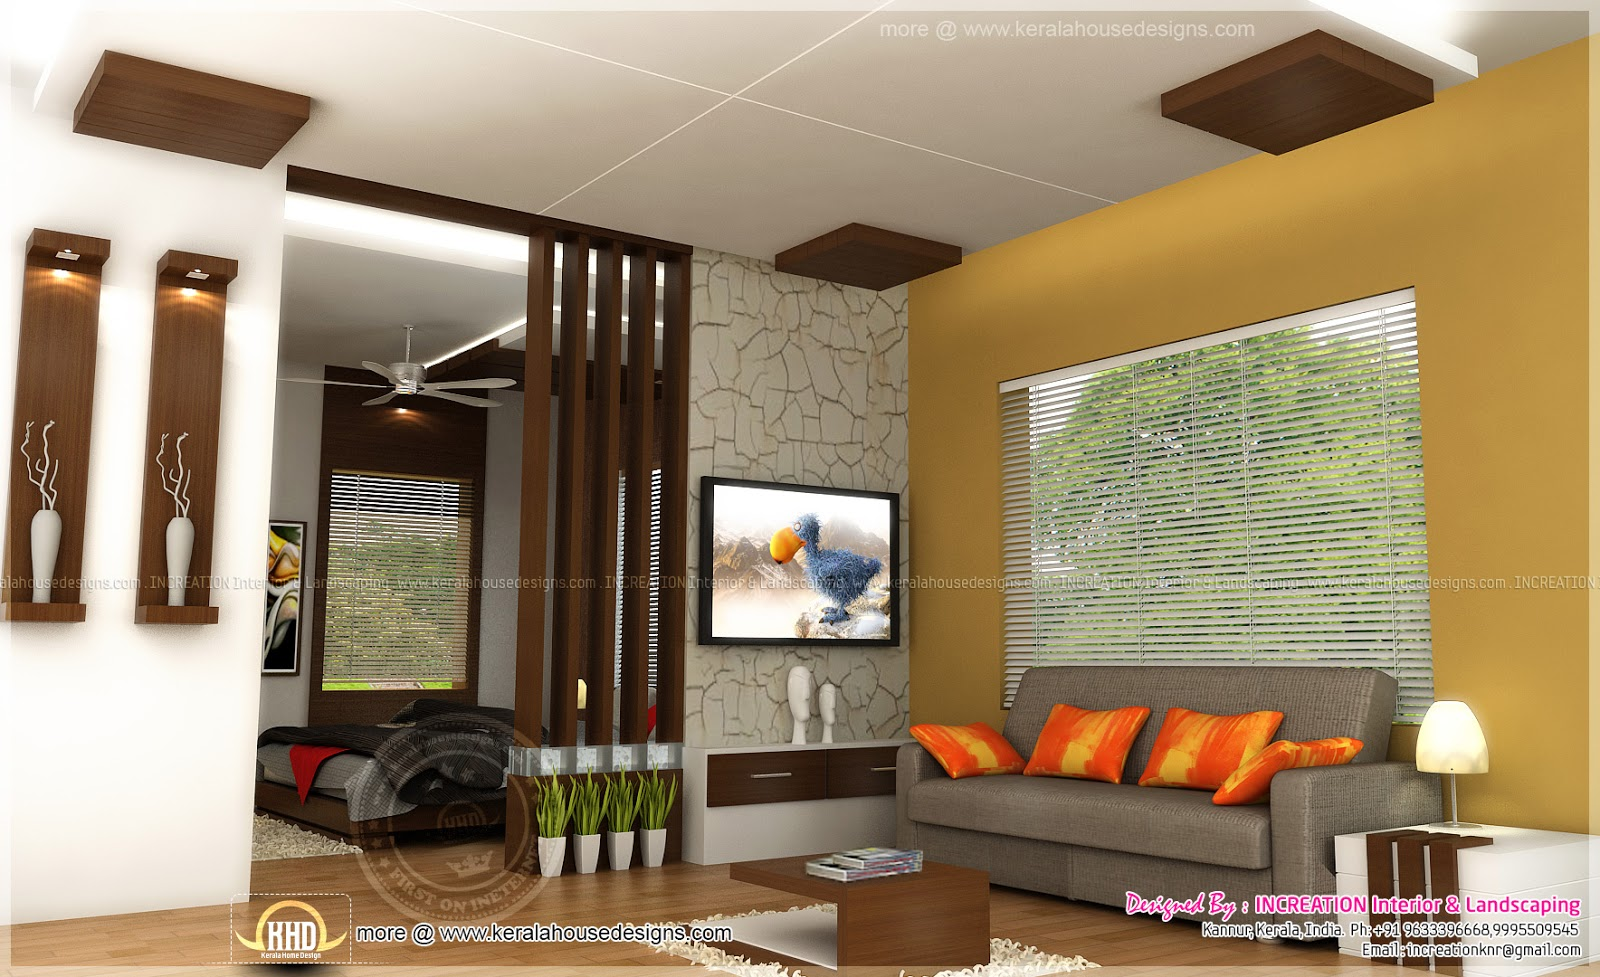 Interior designs from kannur kerala kerala home design for Home drawing room design